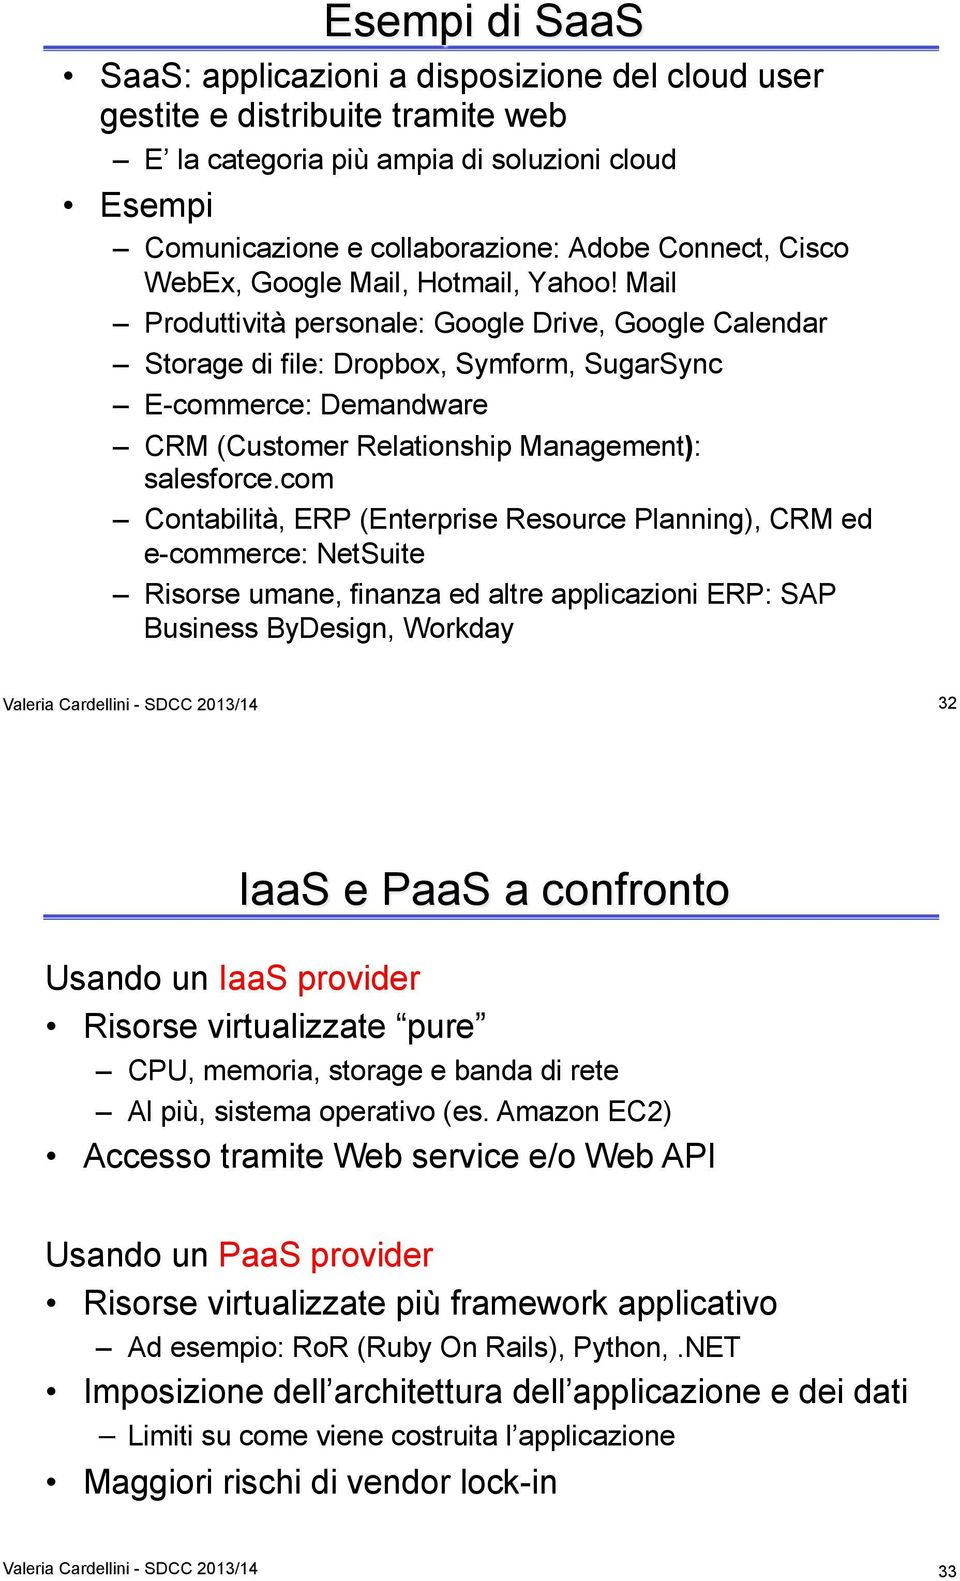 Mail Produttività personale: Google Drive, Google Calendar Storage di file: Dropbox, Symform, SugarSync E-commerce: Demandware CRM (Customer Relationship Management): salesforce.